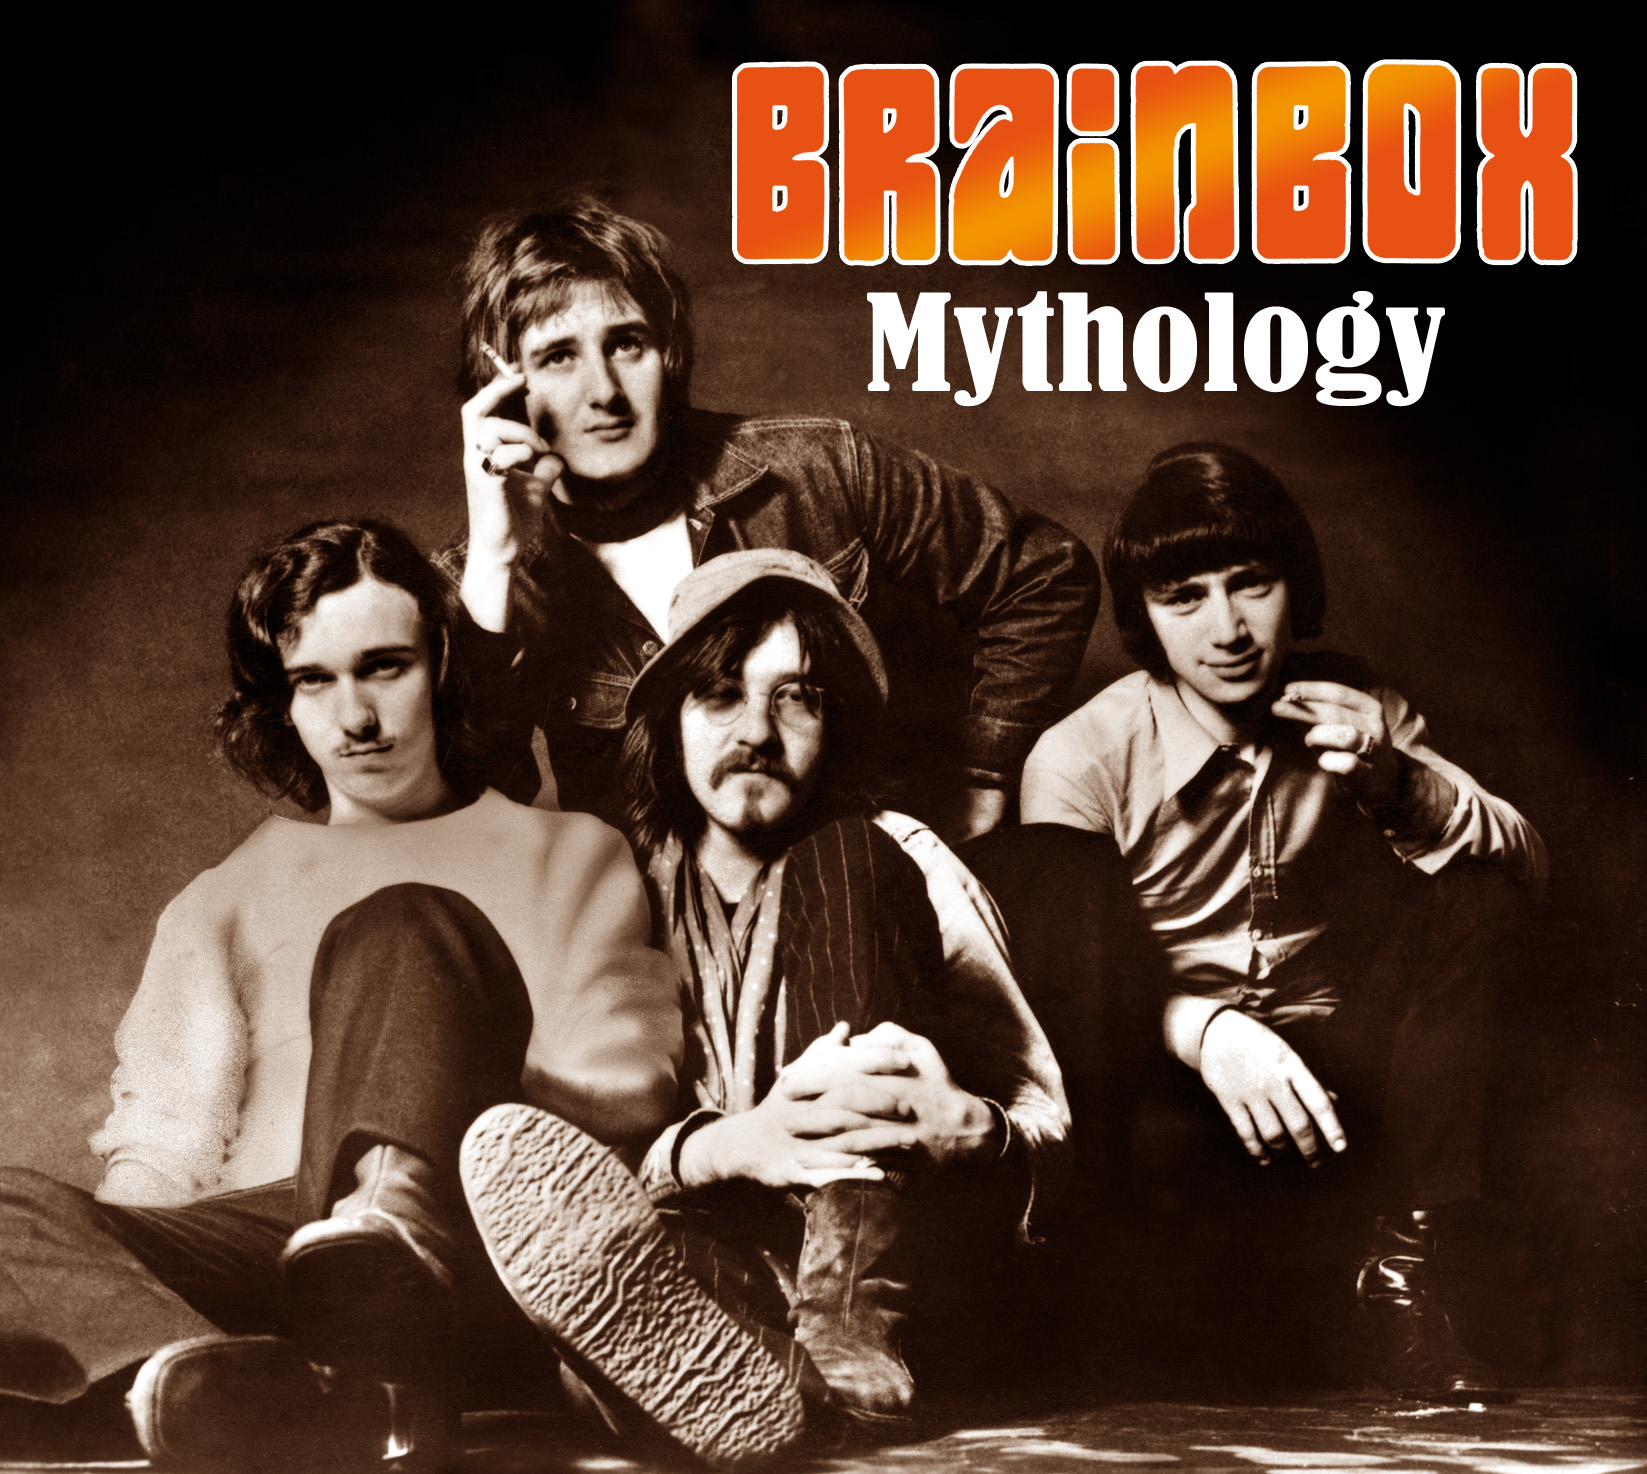 Mythology Cover art